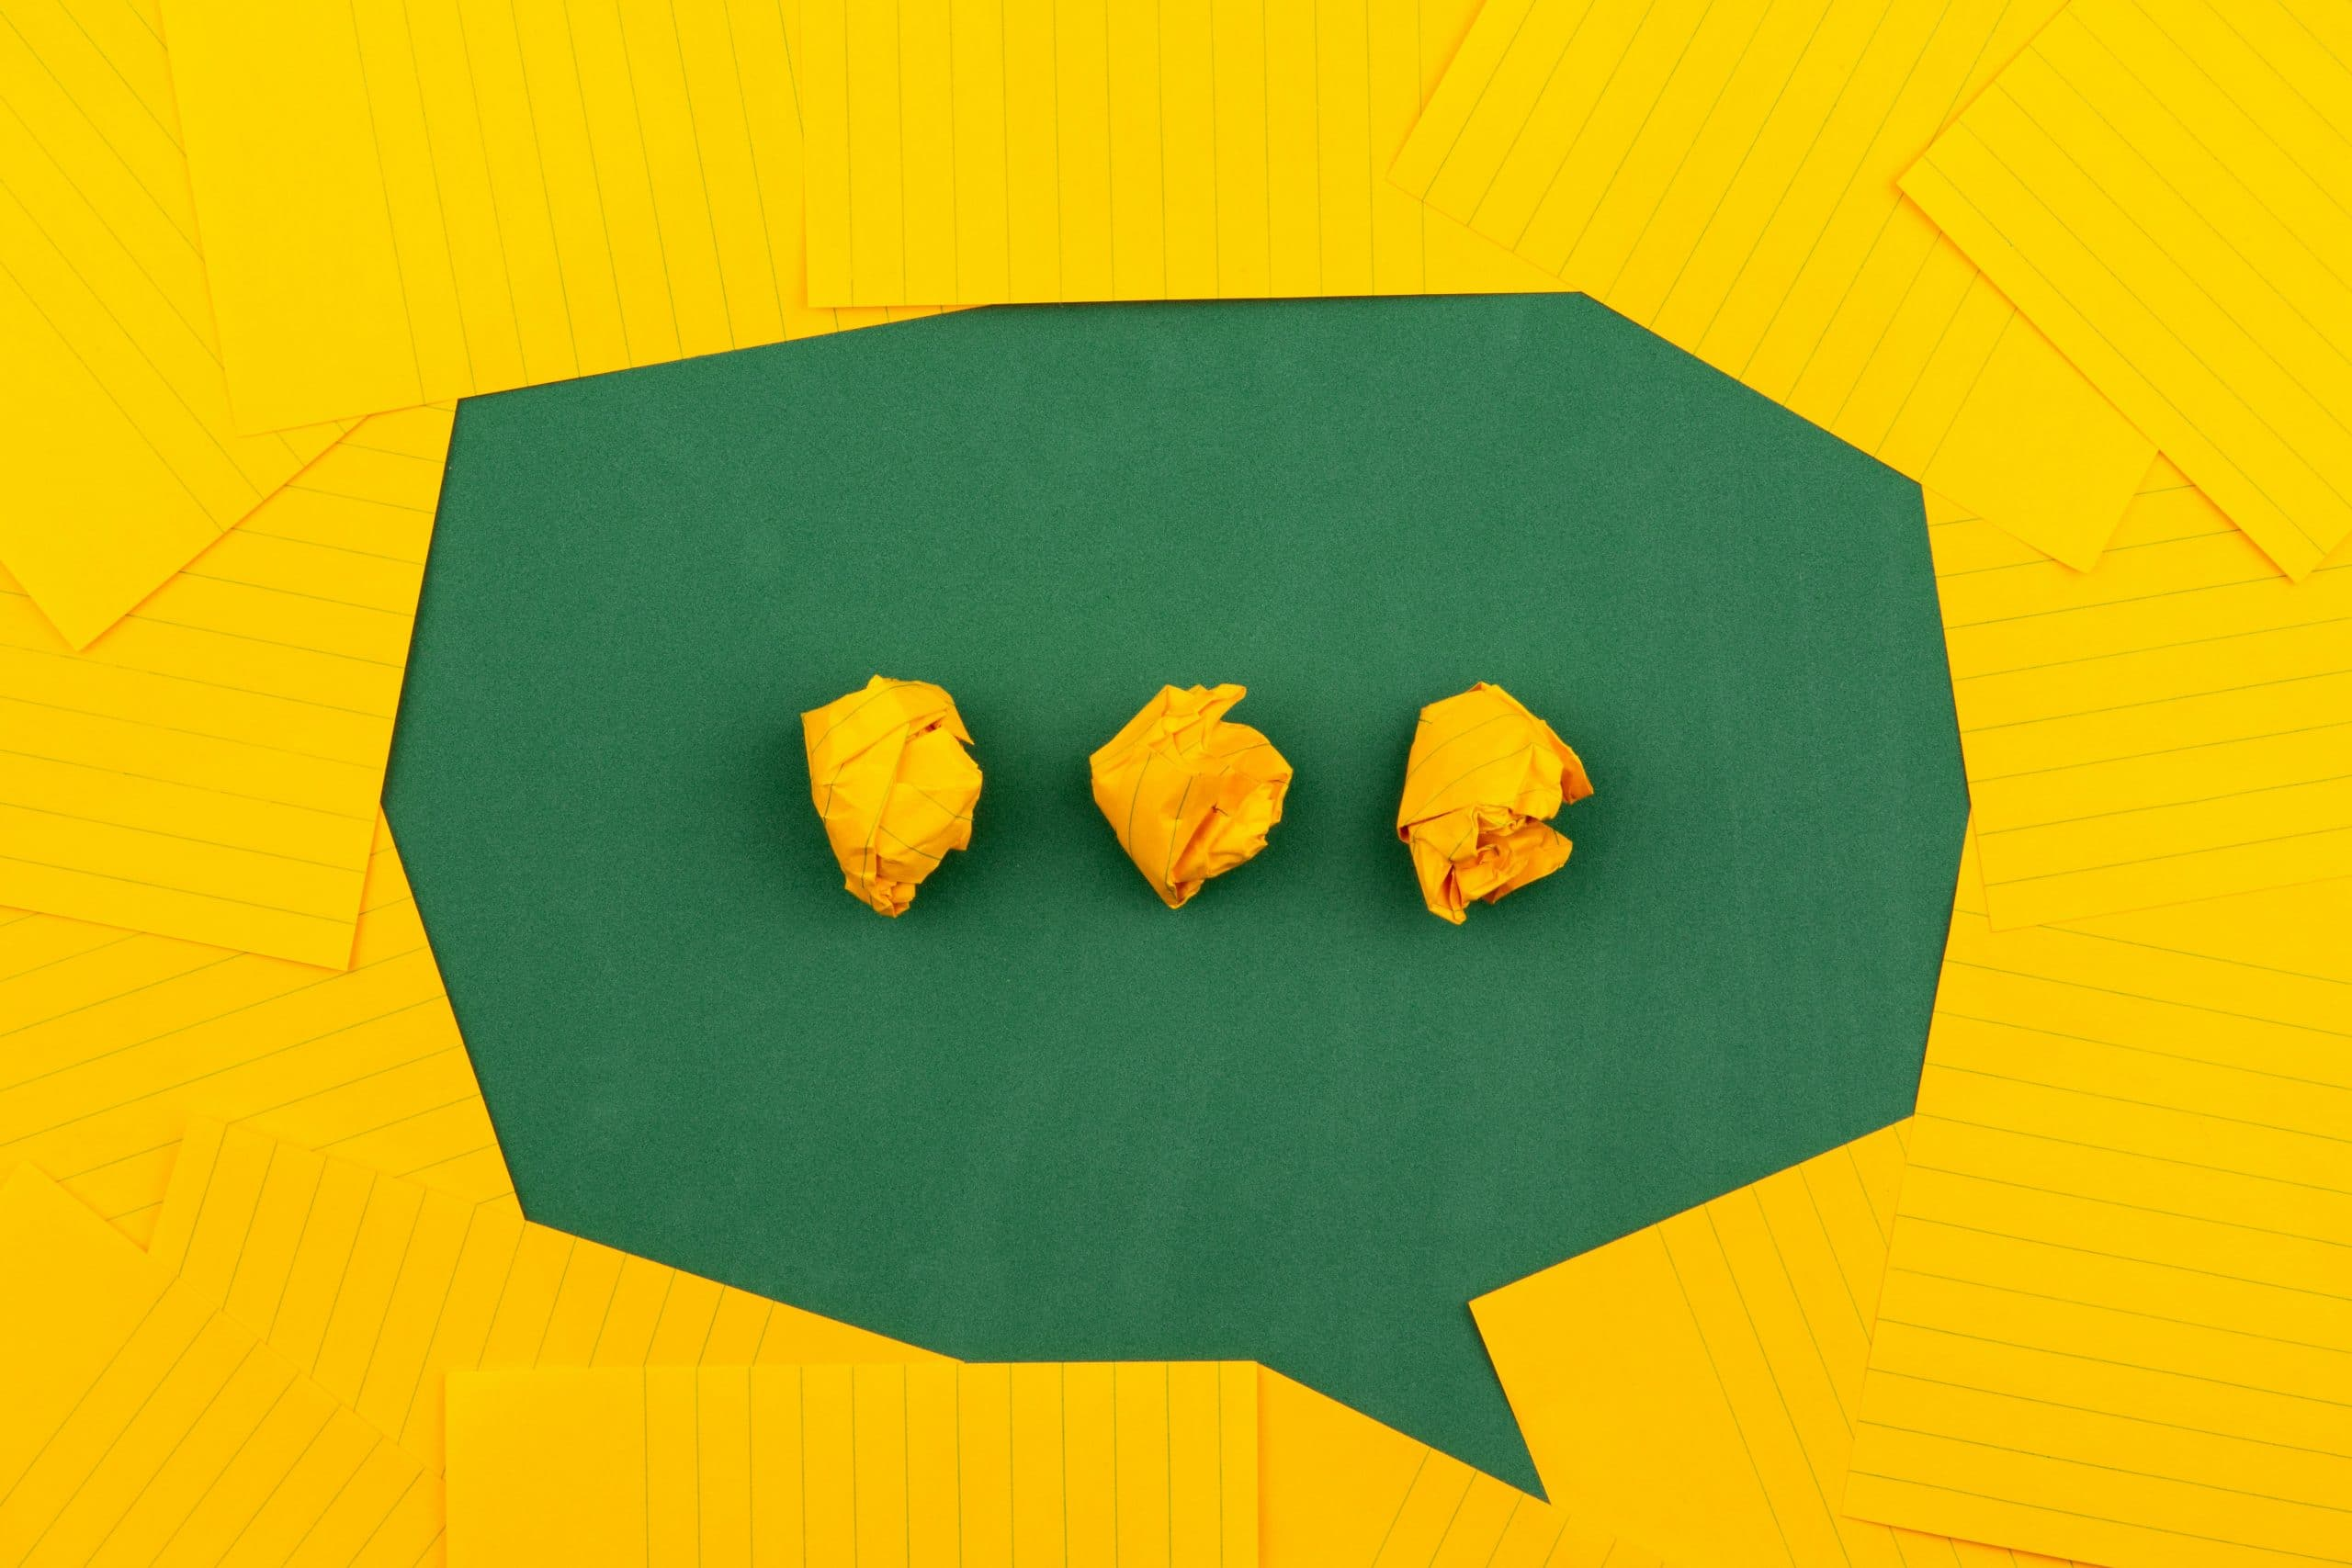 Live chat widget made out of folded paper